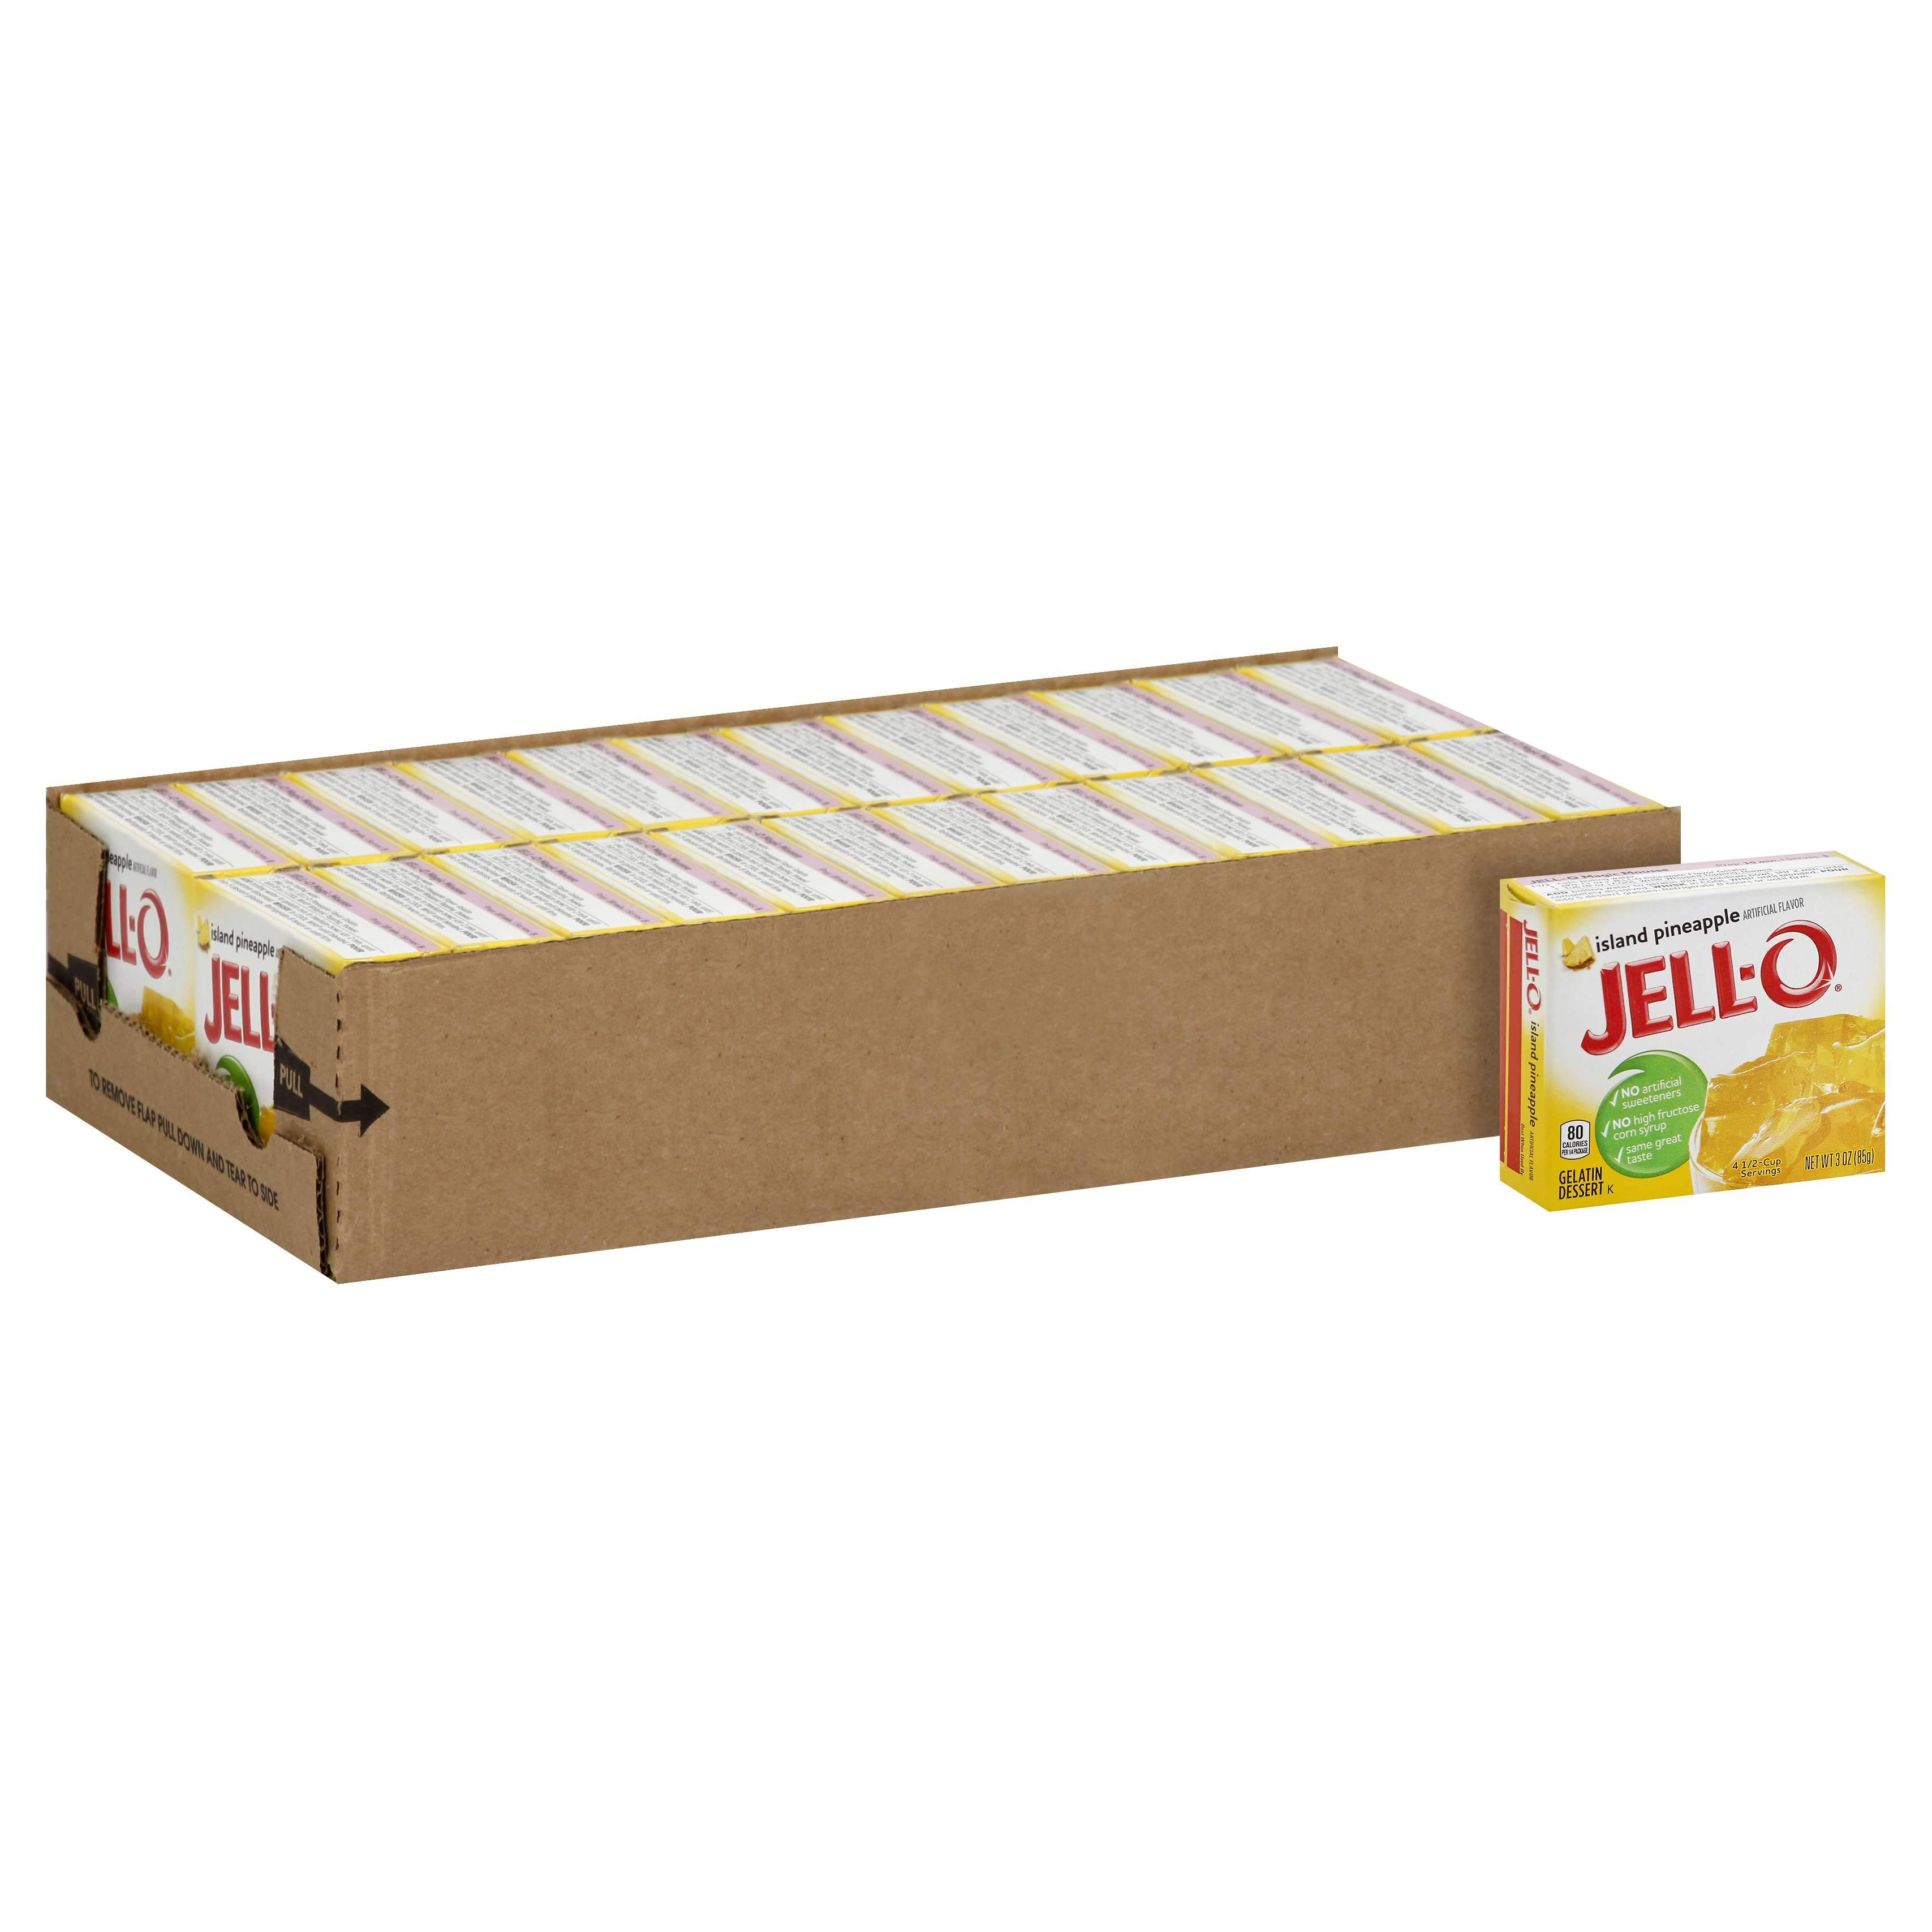 Jell-O Gelatin Mix Jell-O Island Pineapple 3 Oz-24 Count